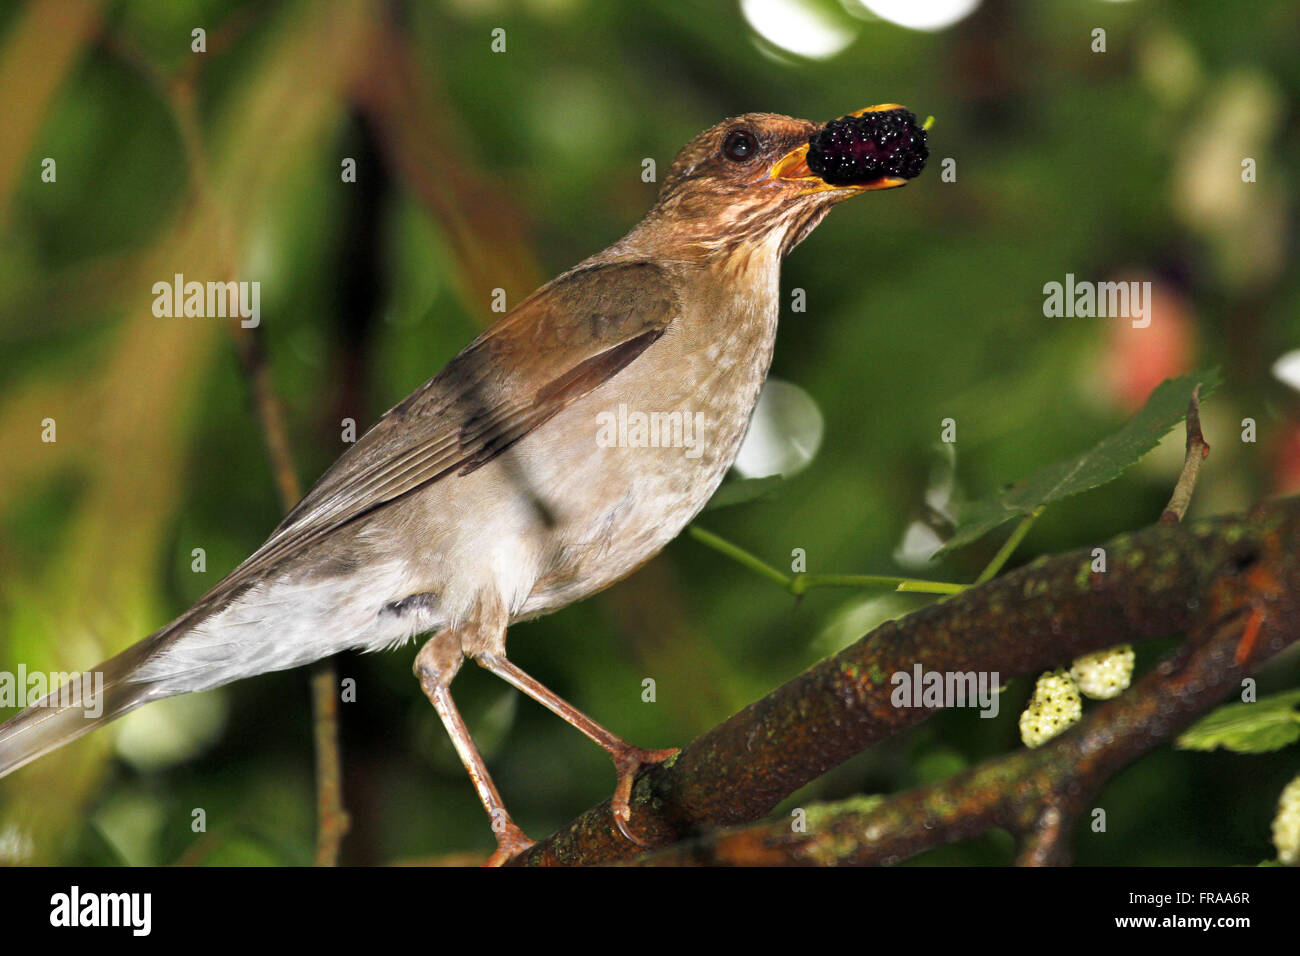 Knew in orange mulberry twig - rufiventris Turdus - Stock Image